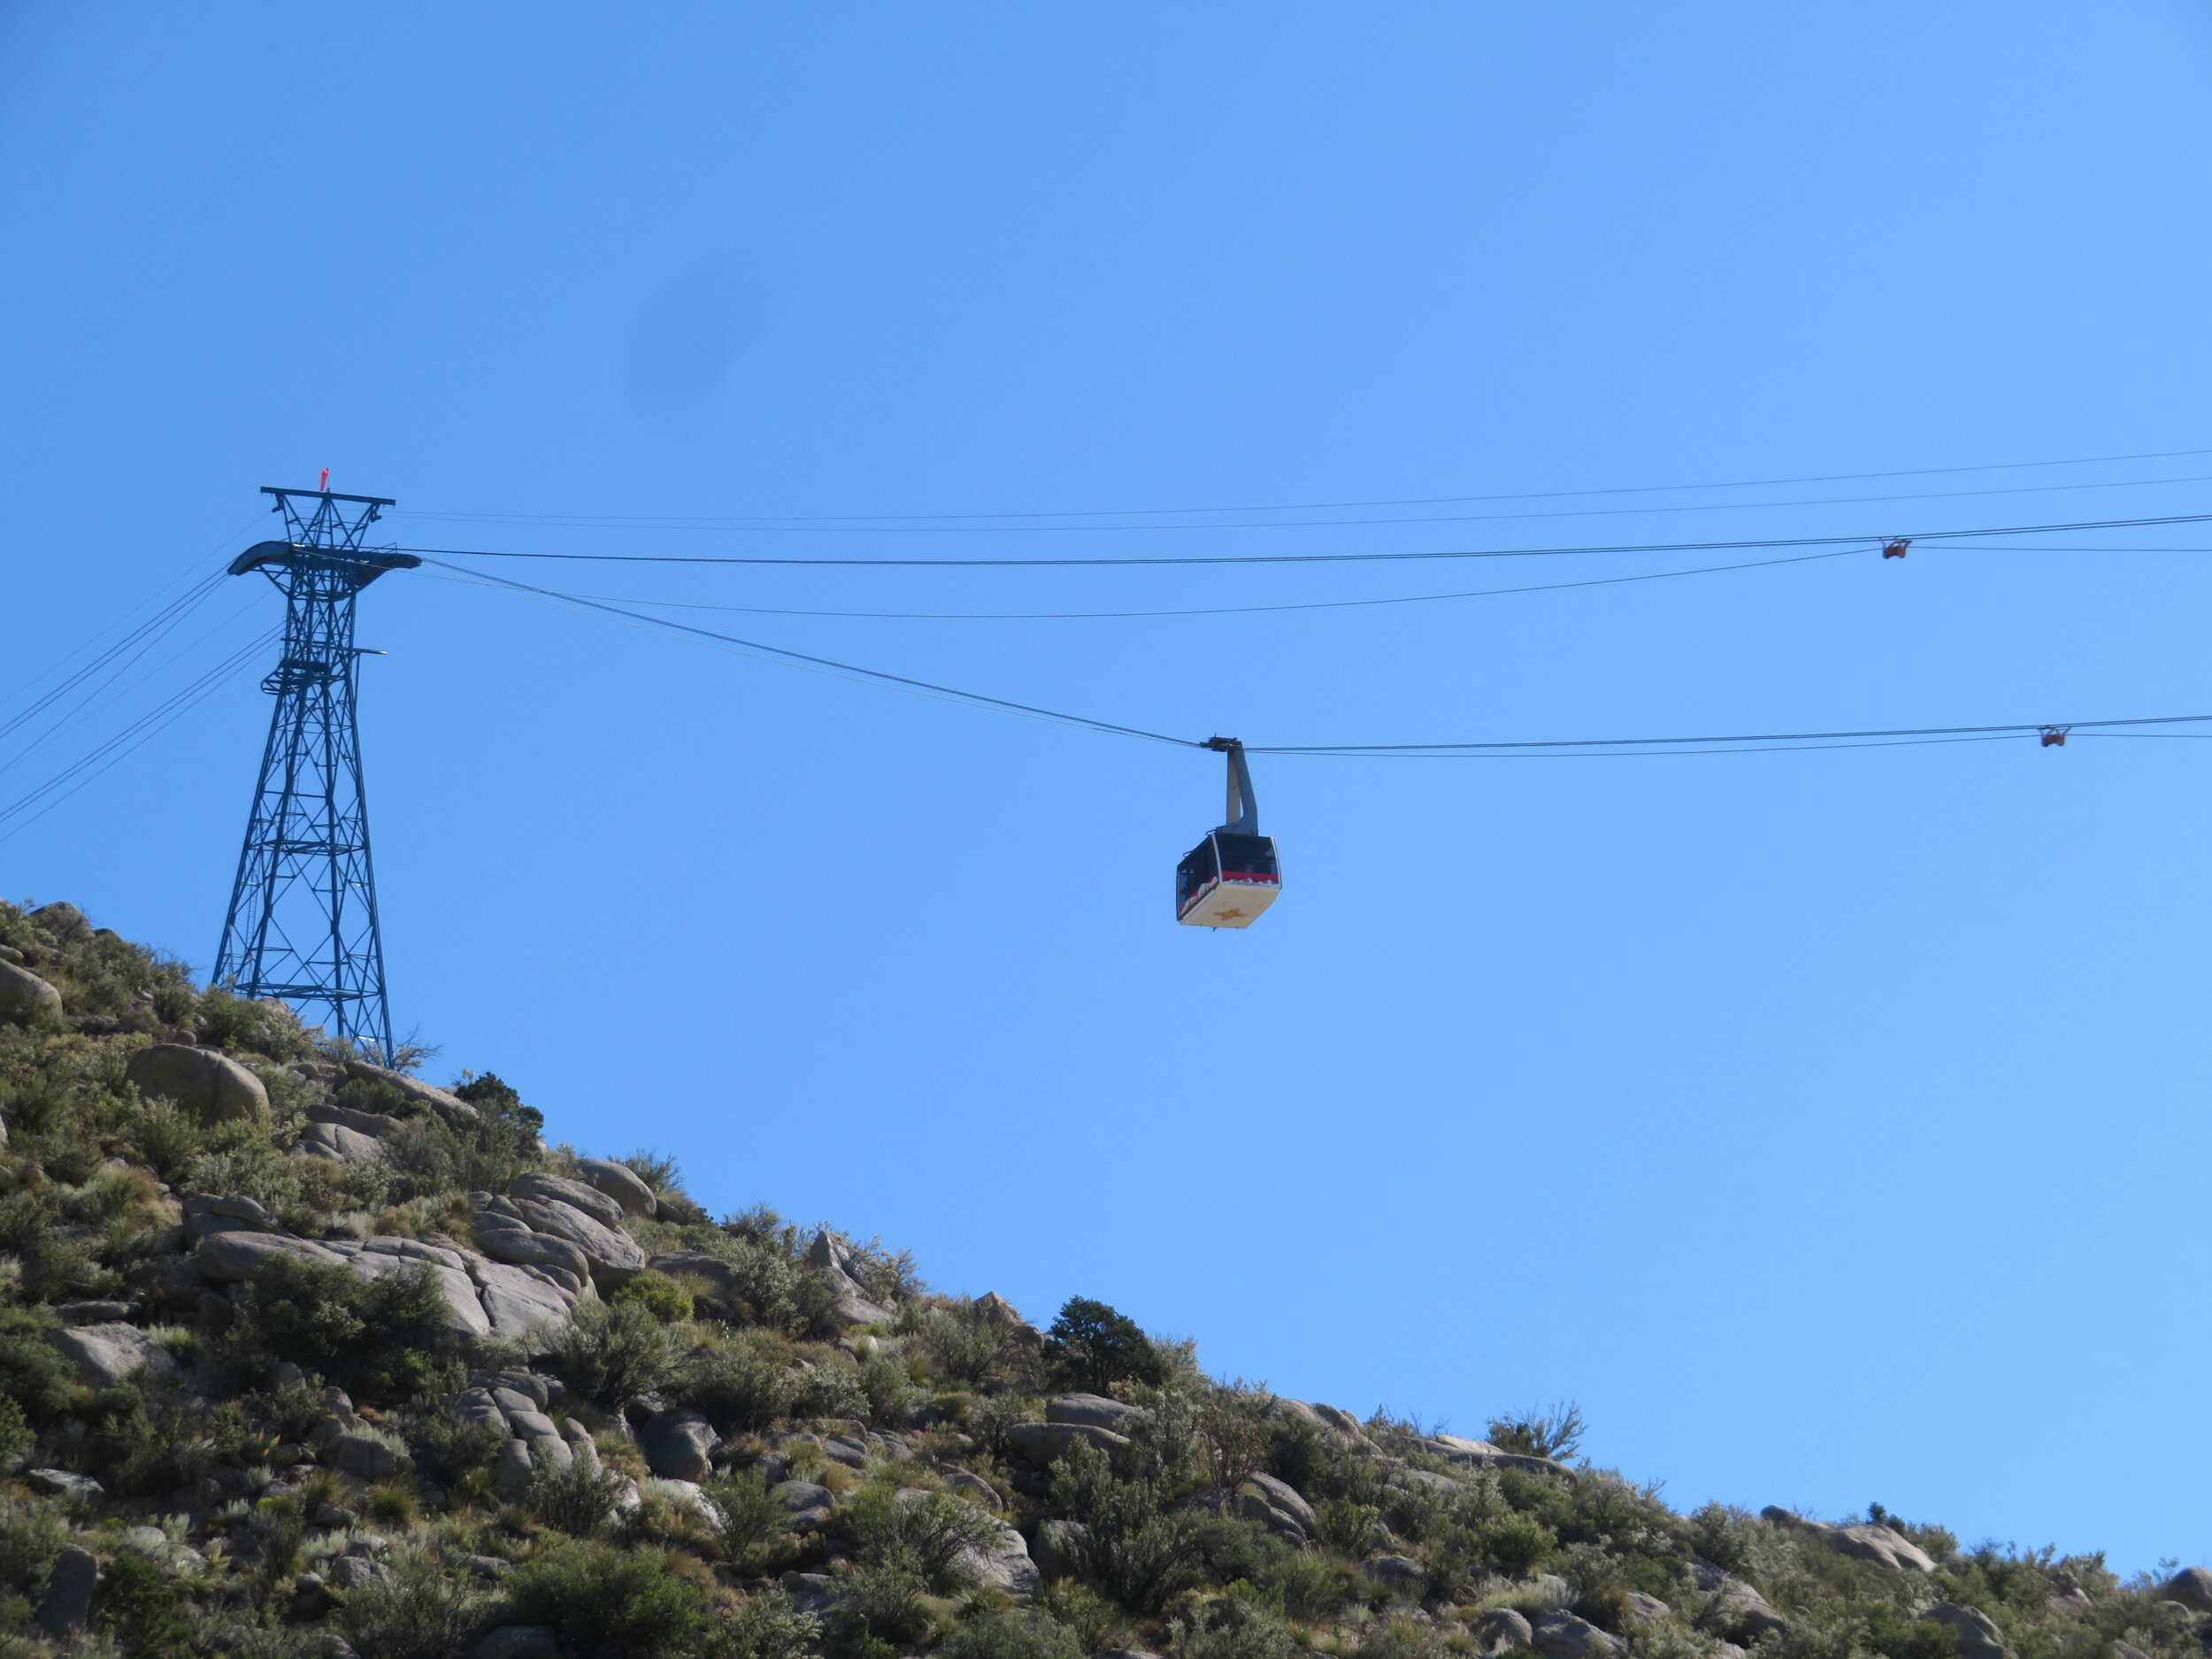 Watching the tram ascend from the base station